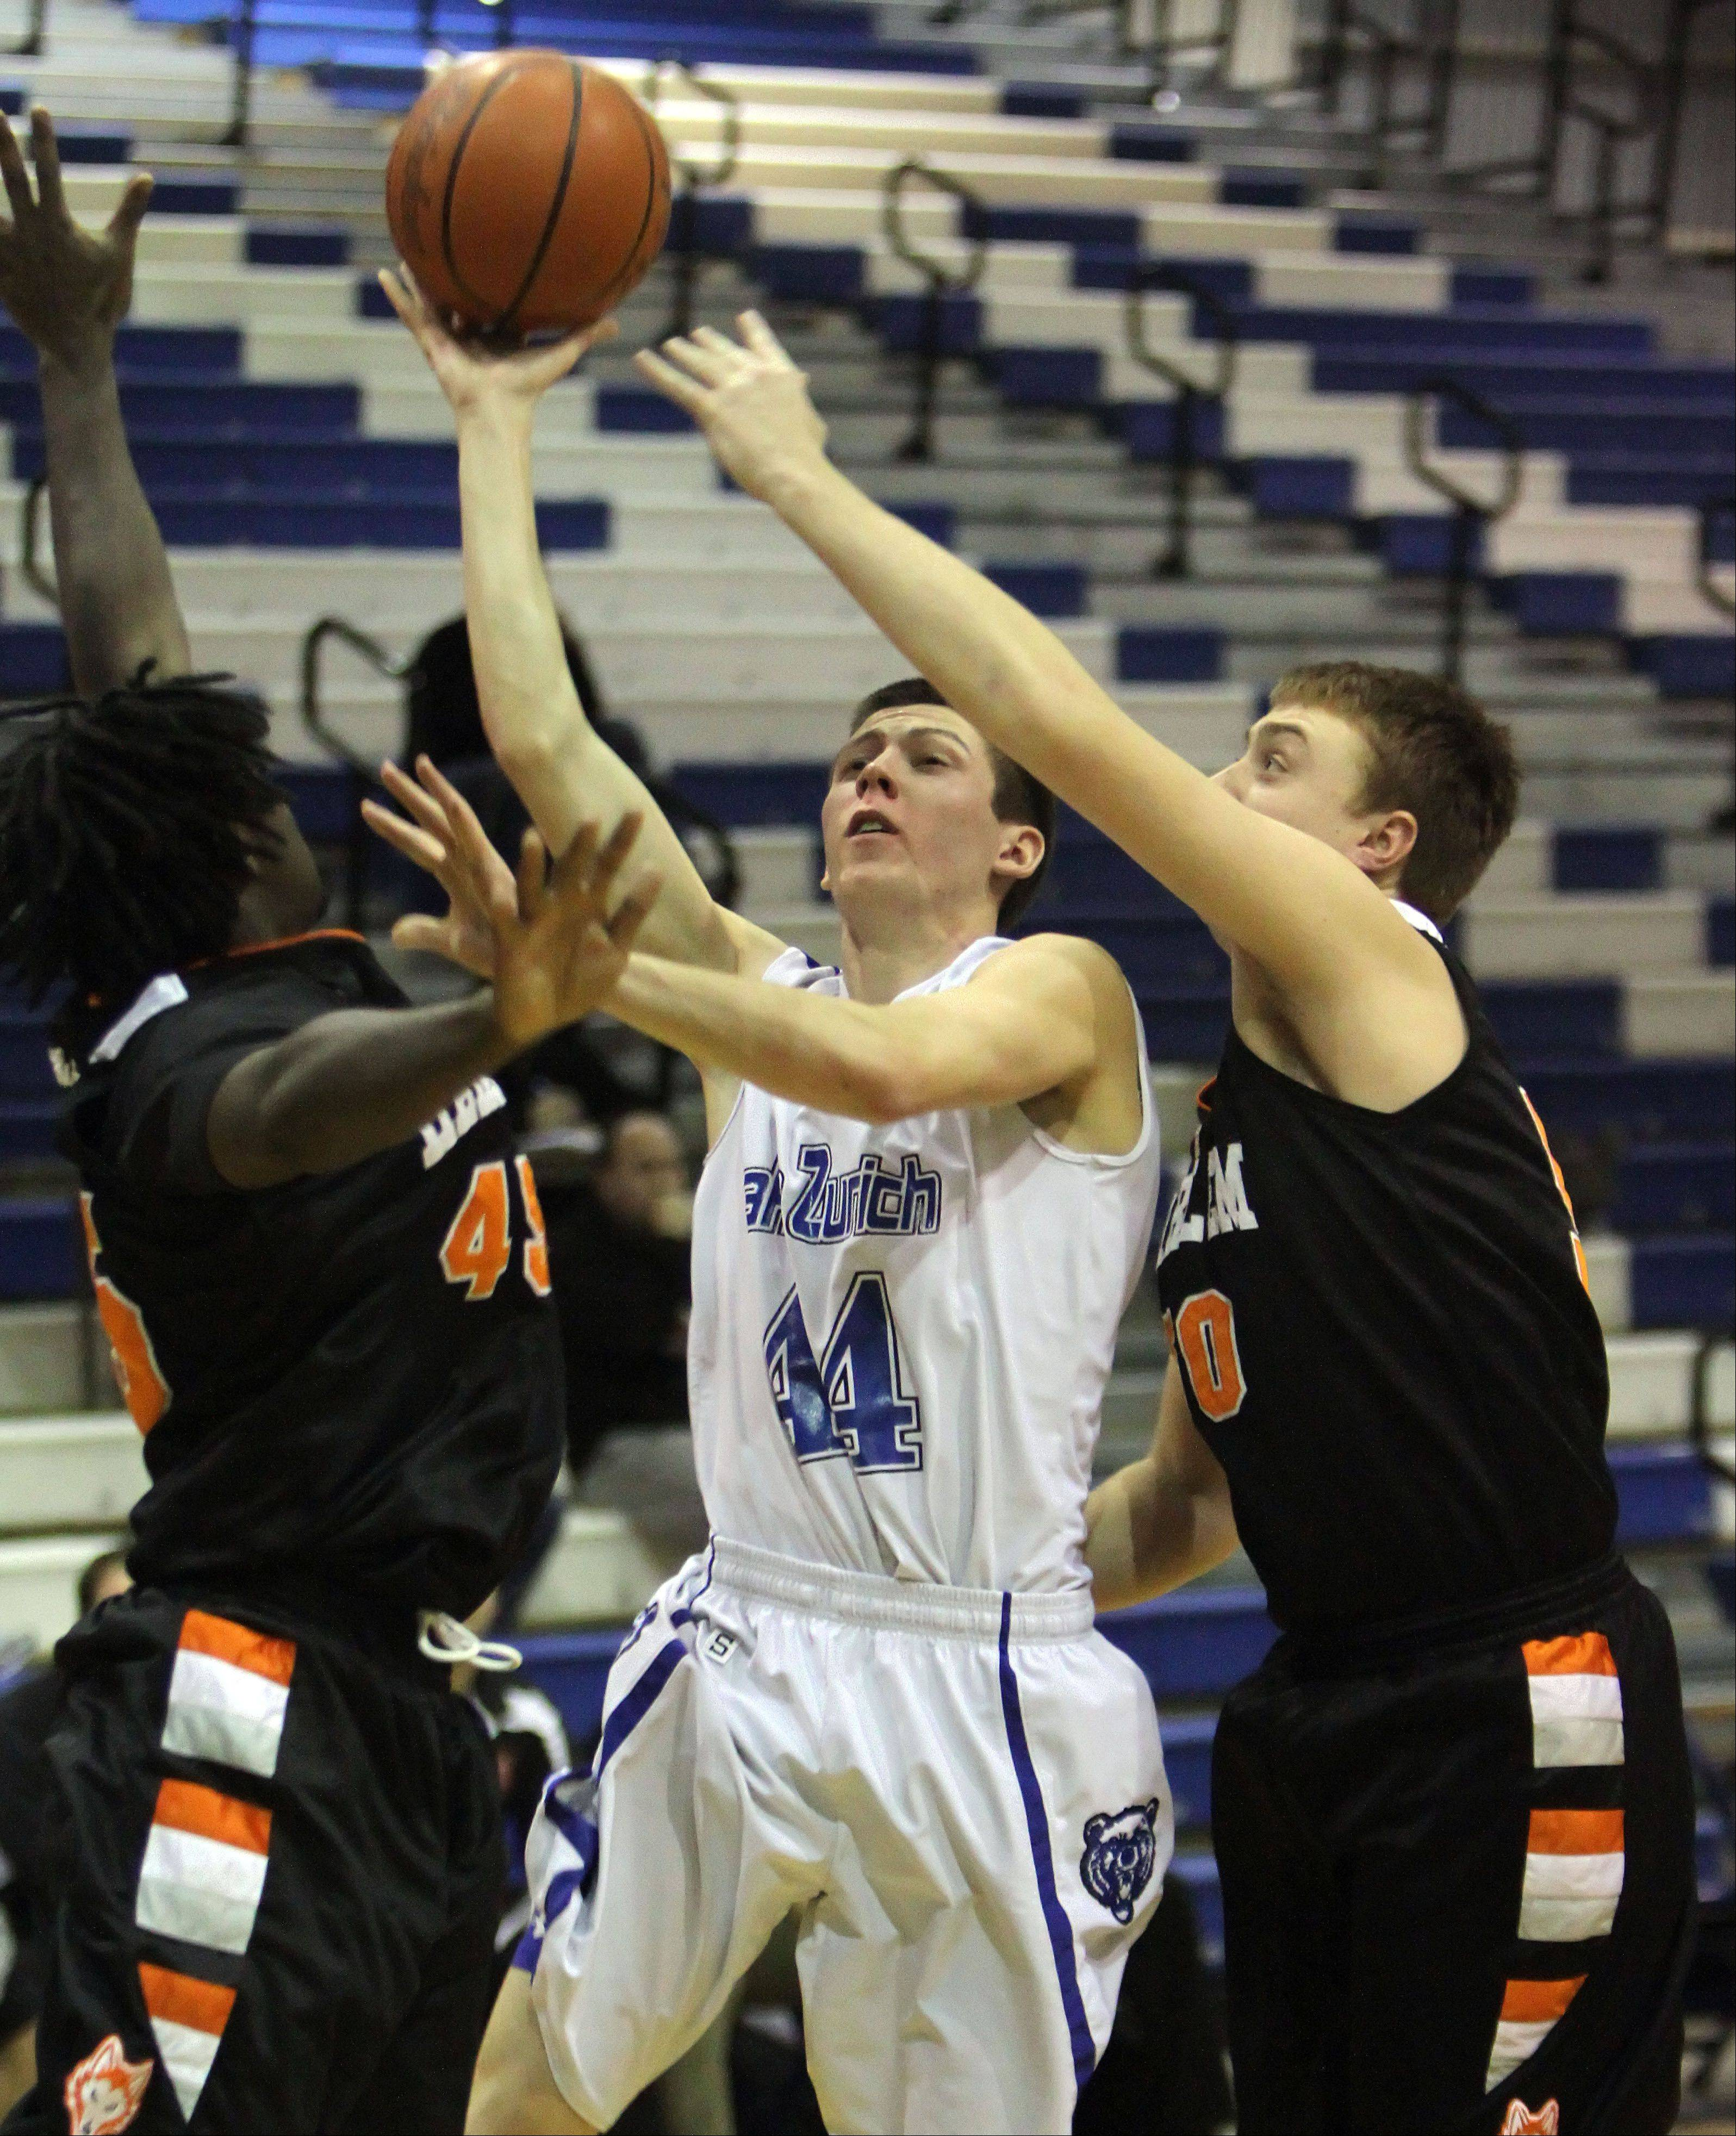 Lake Zurich's Ryan Roach drives on Brent Croft, left, and Harlem on Monday night at Lake Zurich.